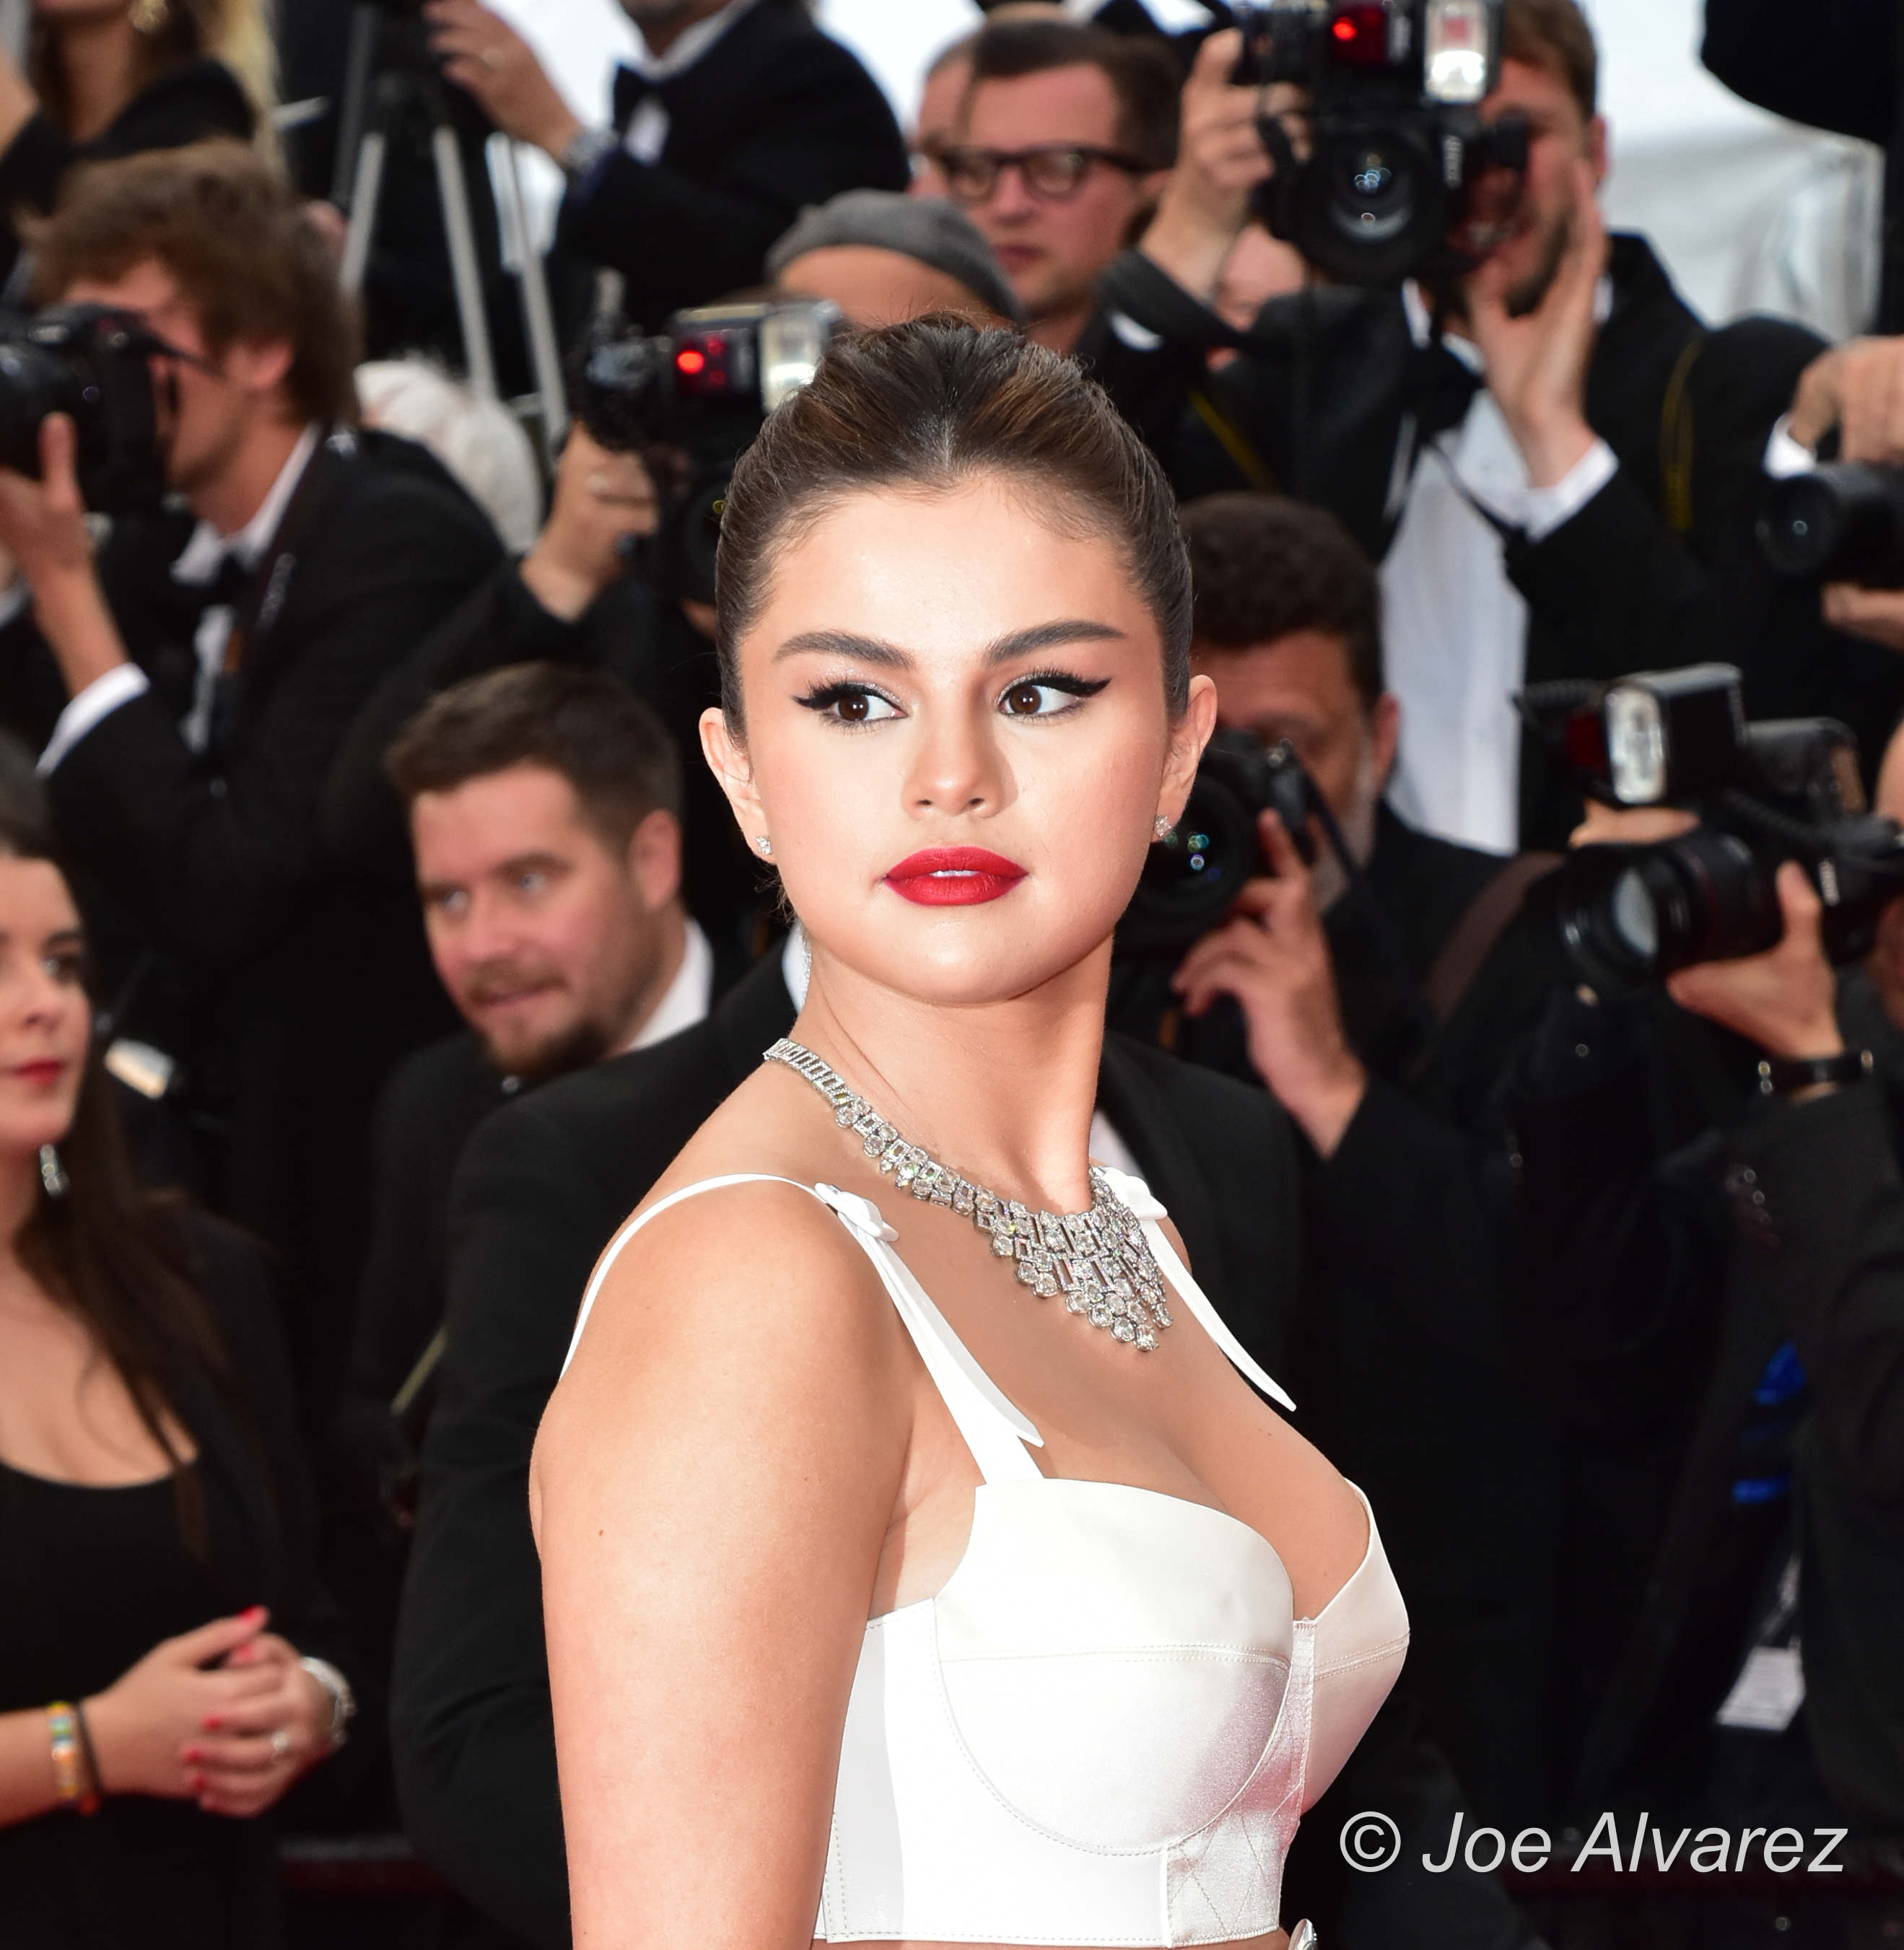 Selena Gomez 72 Cannes Film Festival attending the opening night premiere The Dead Don't Die © Joe Alvarez